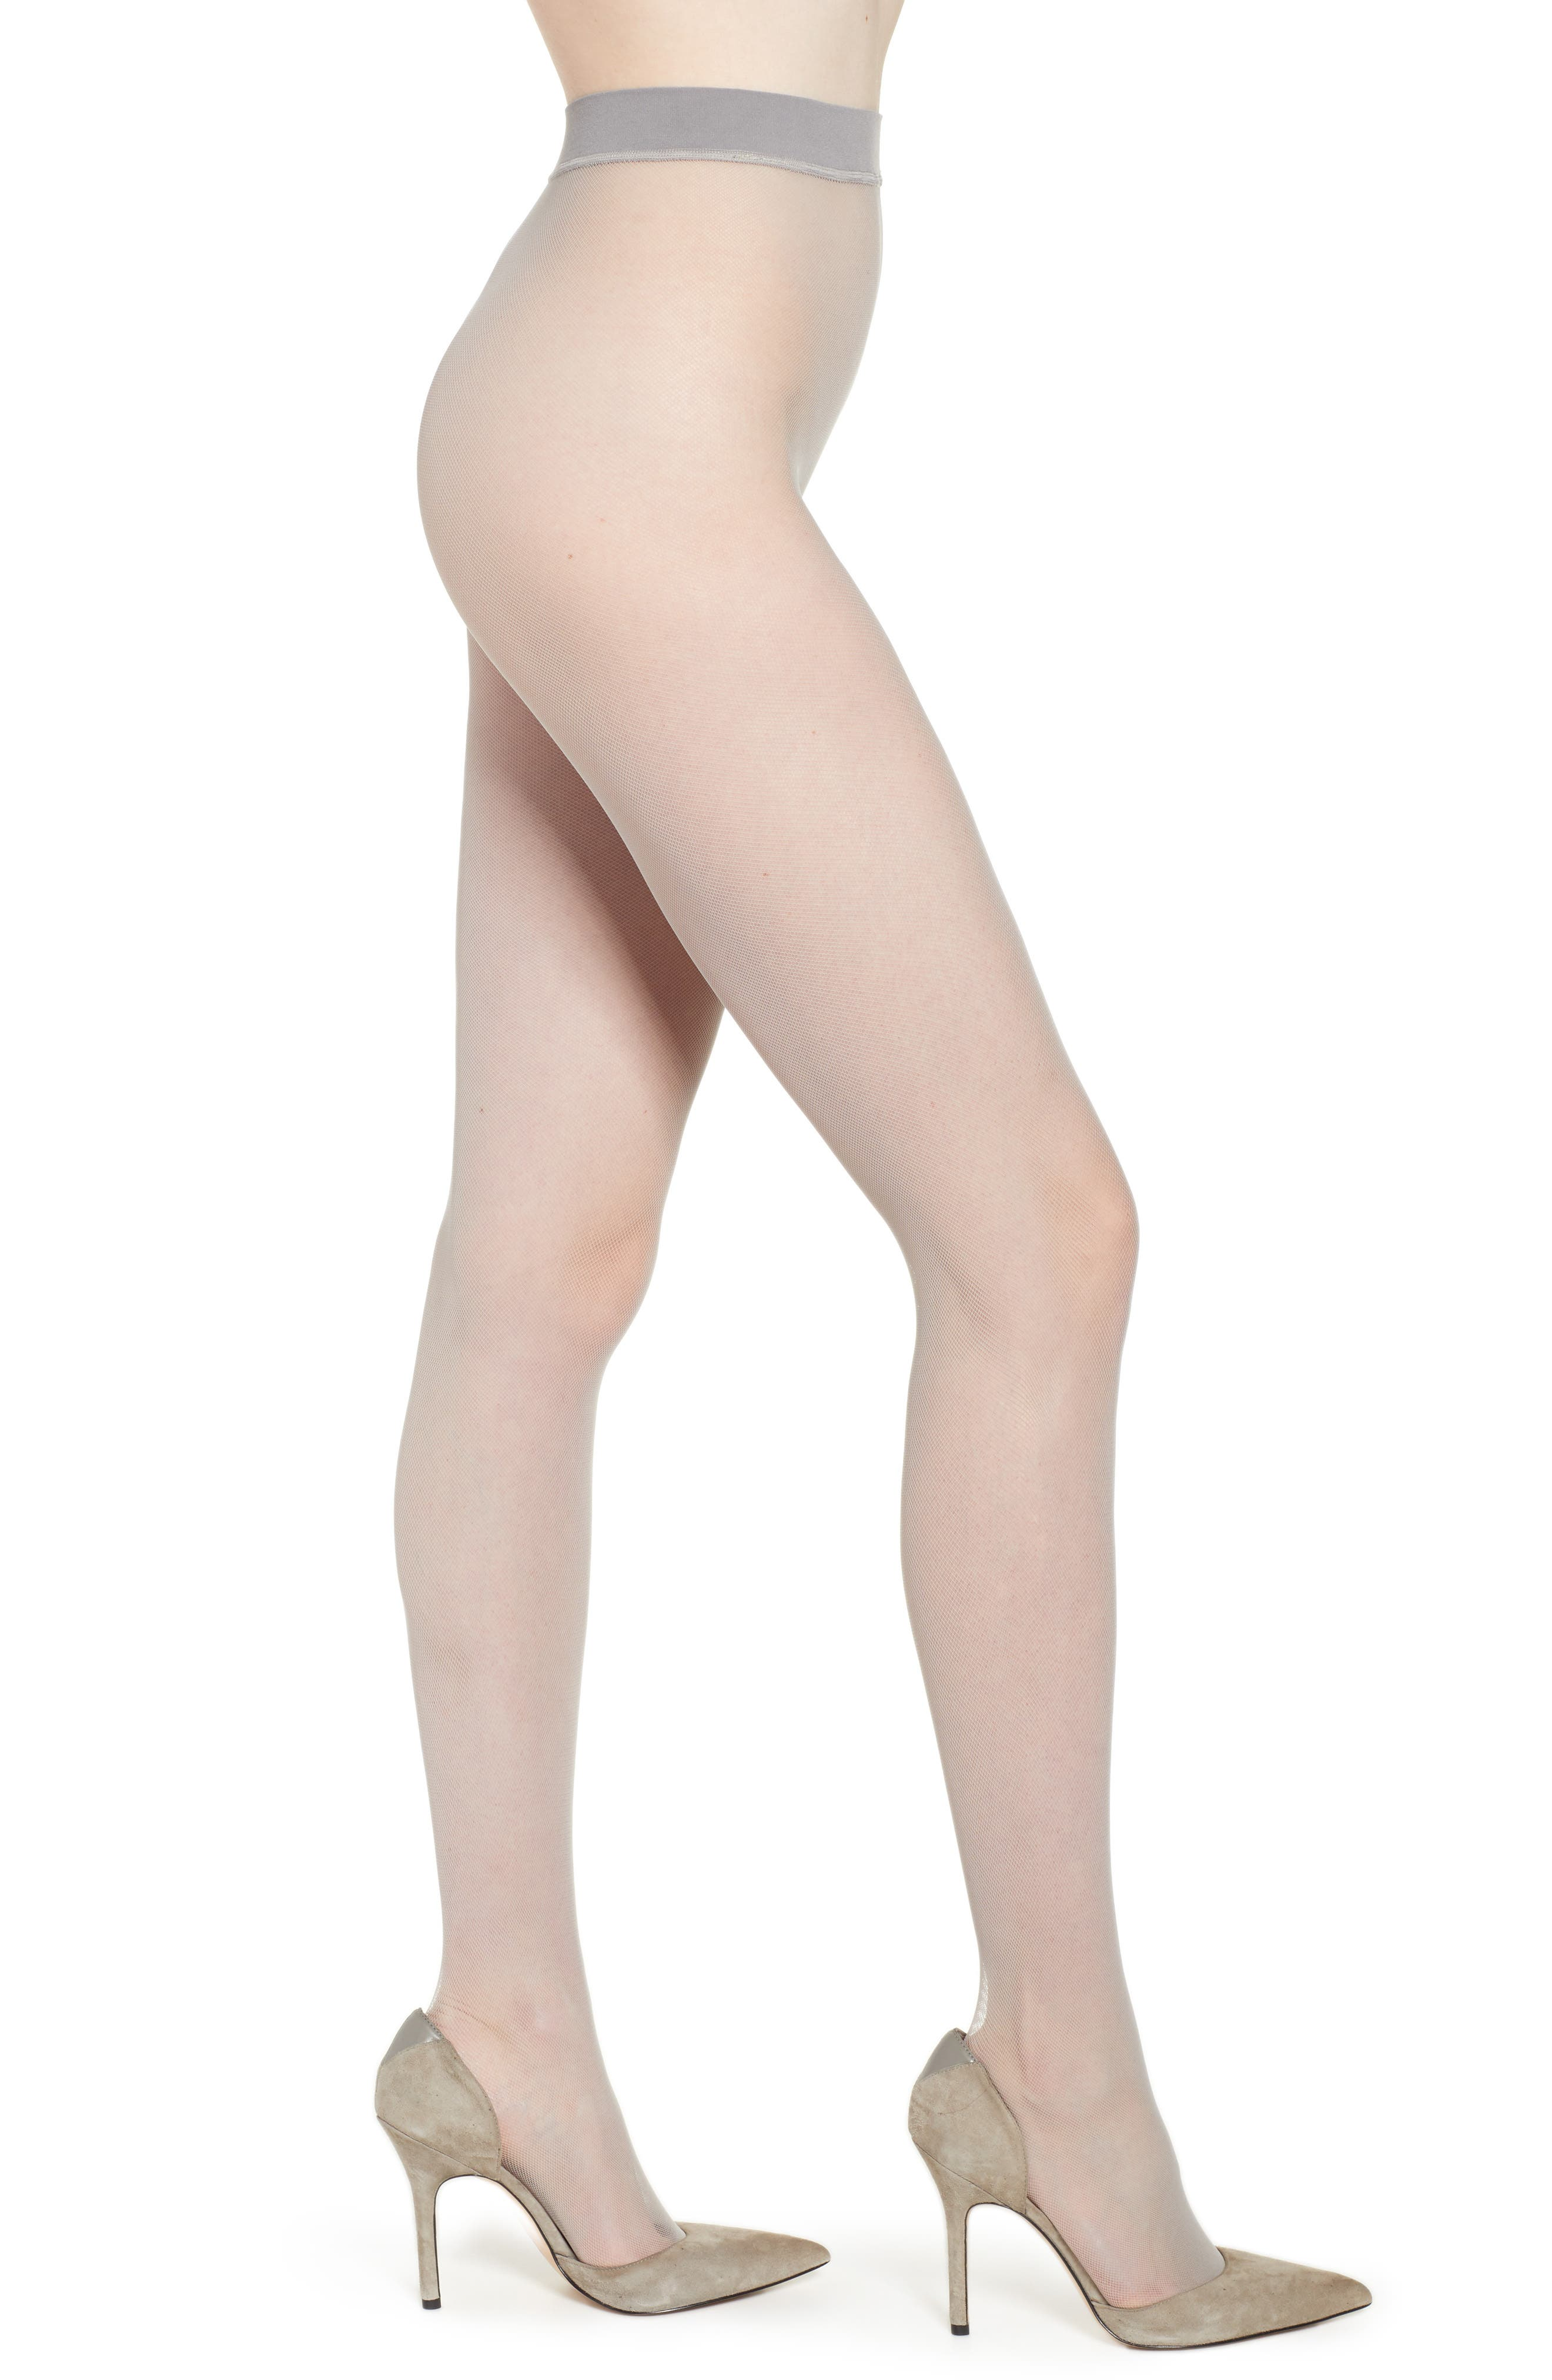 8a4c883b6 Women s Stockings   Tights Sale